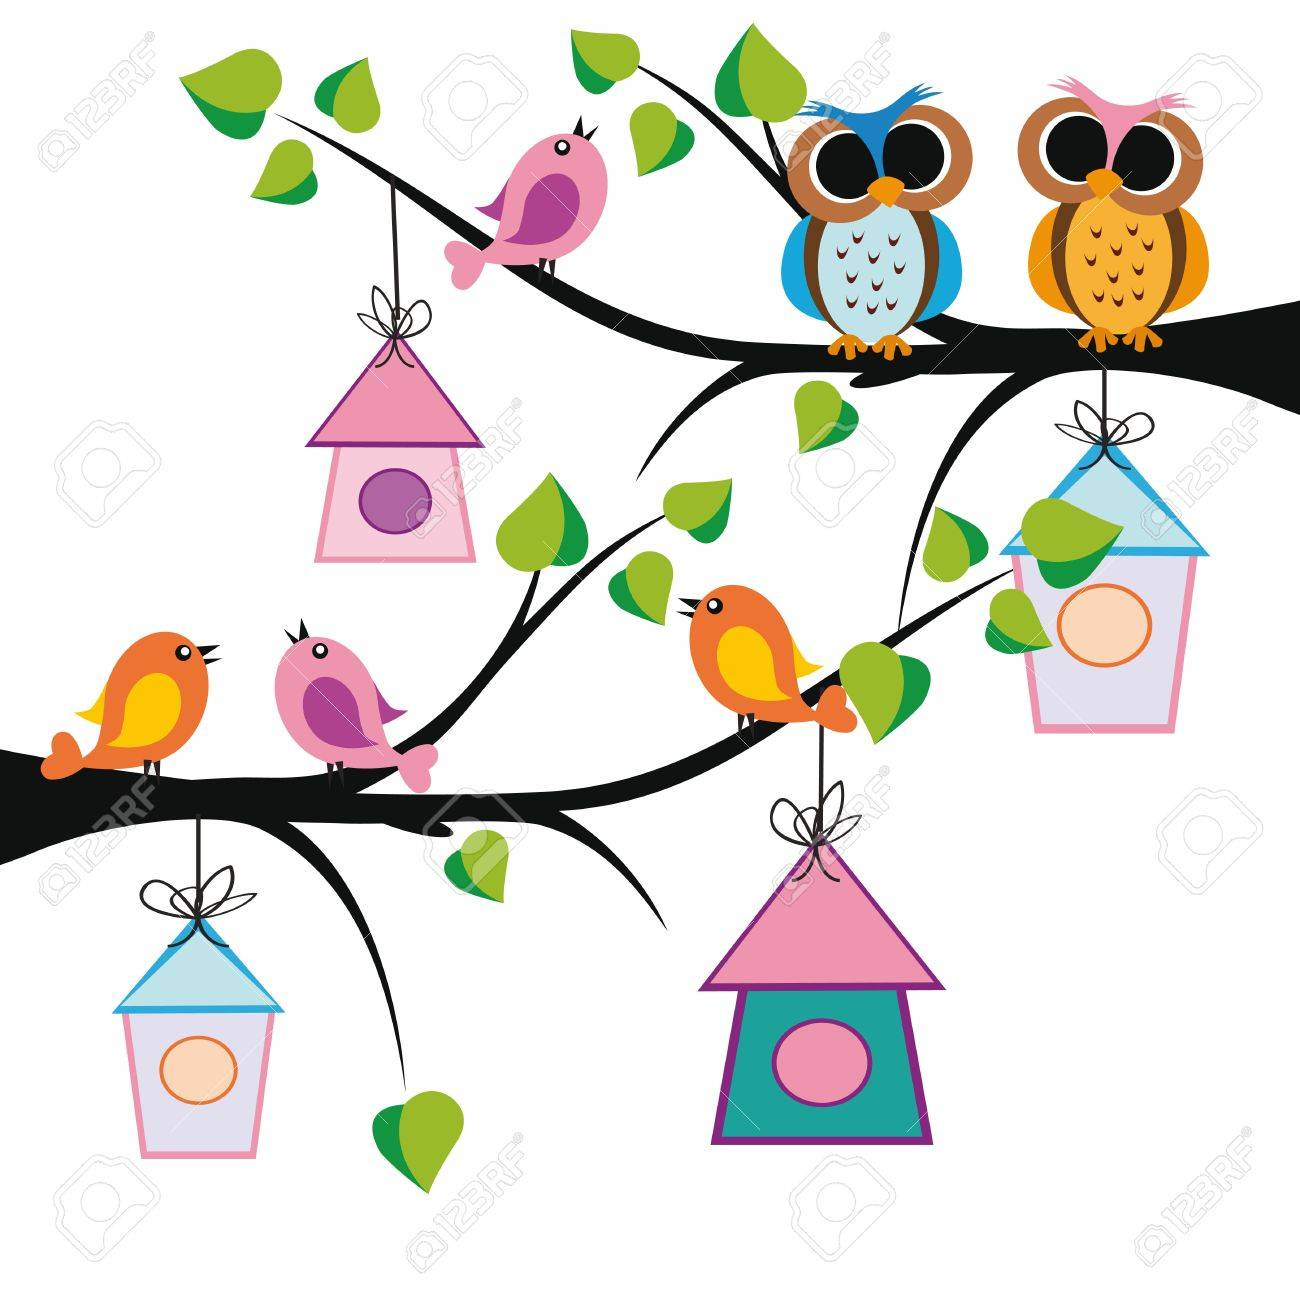 Cute kids background with trees and birds Stock Vector - 13134470